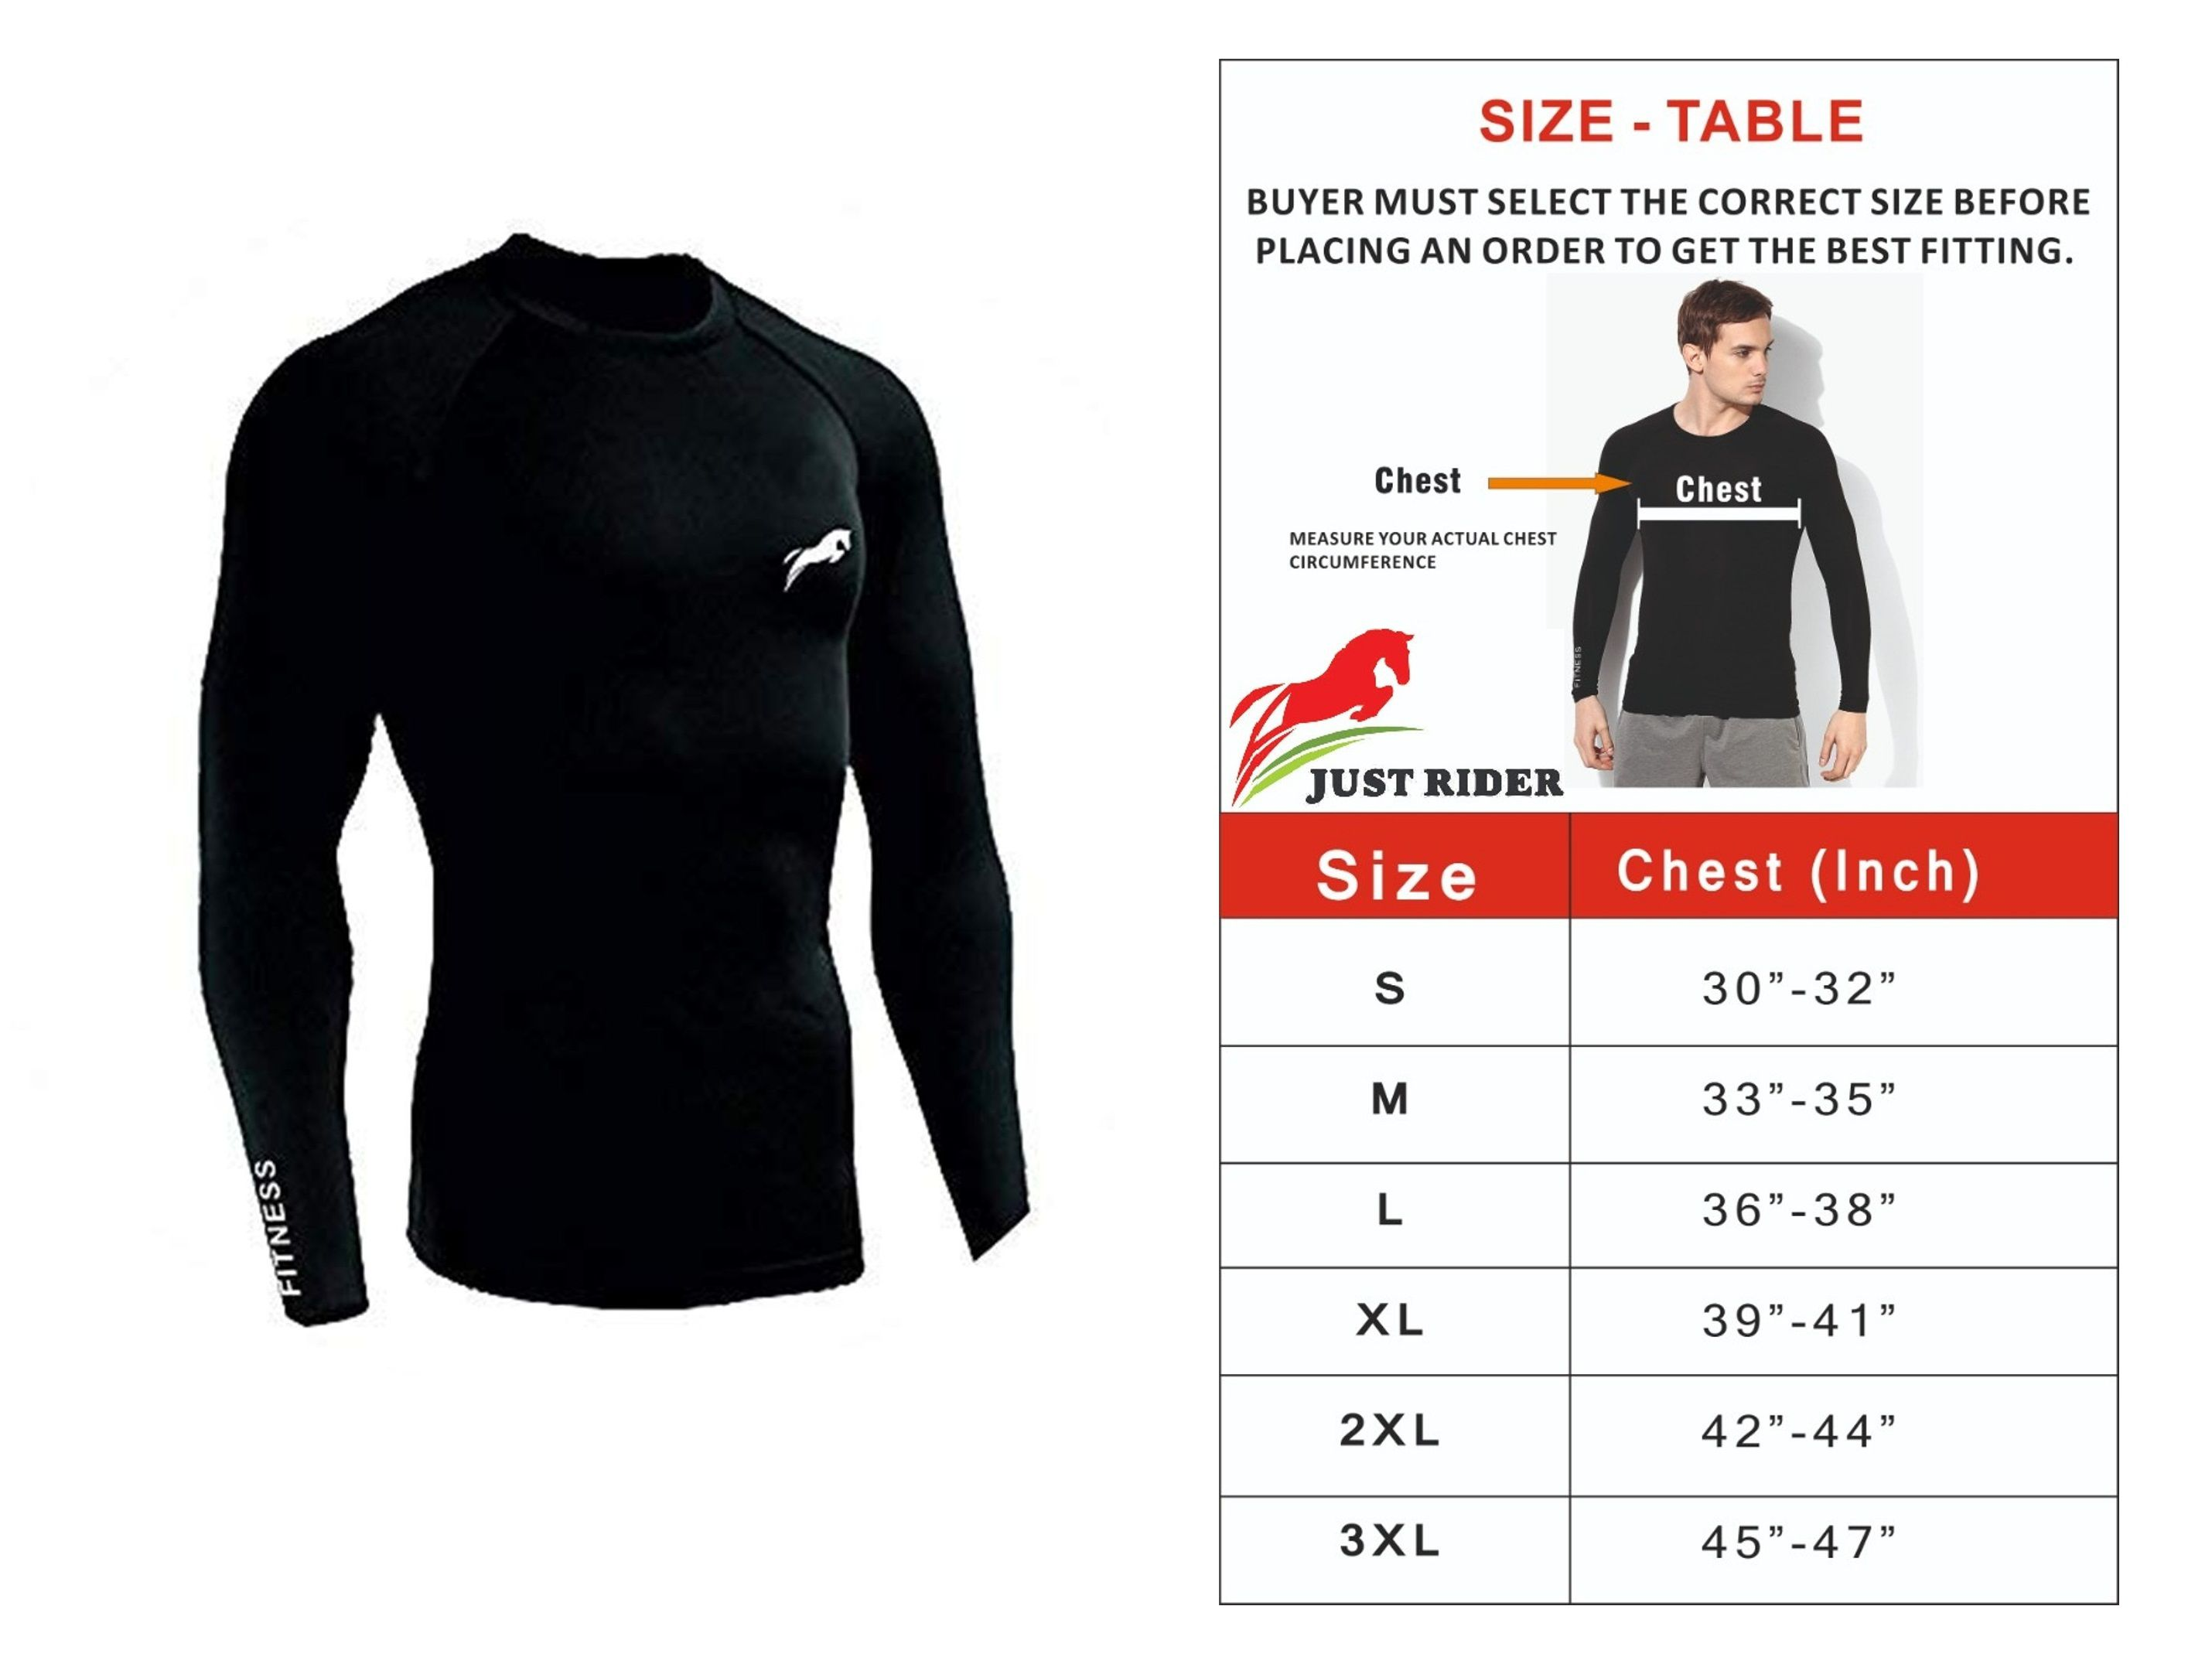 Just Rider 100% Polyester Compression T-SHIRT 'Top Full Sleeve Plain Athletic Fit Multi Sports Cycling, Cricket, Football, Badminton, Gym, Fitness & Other Outdoor Inner Wear